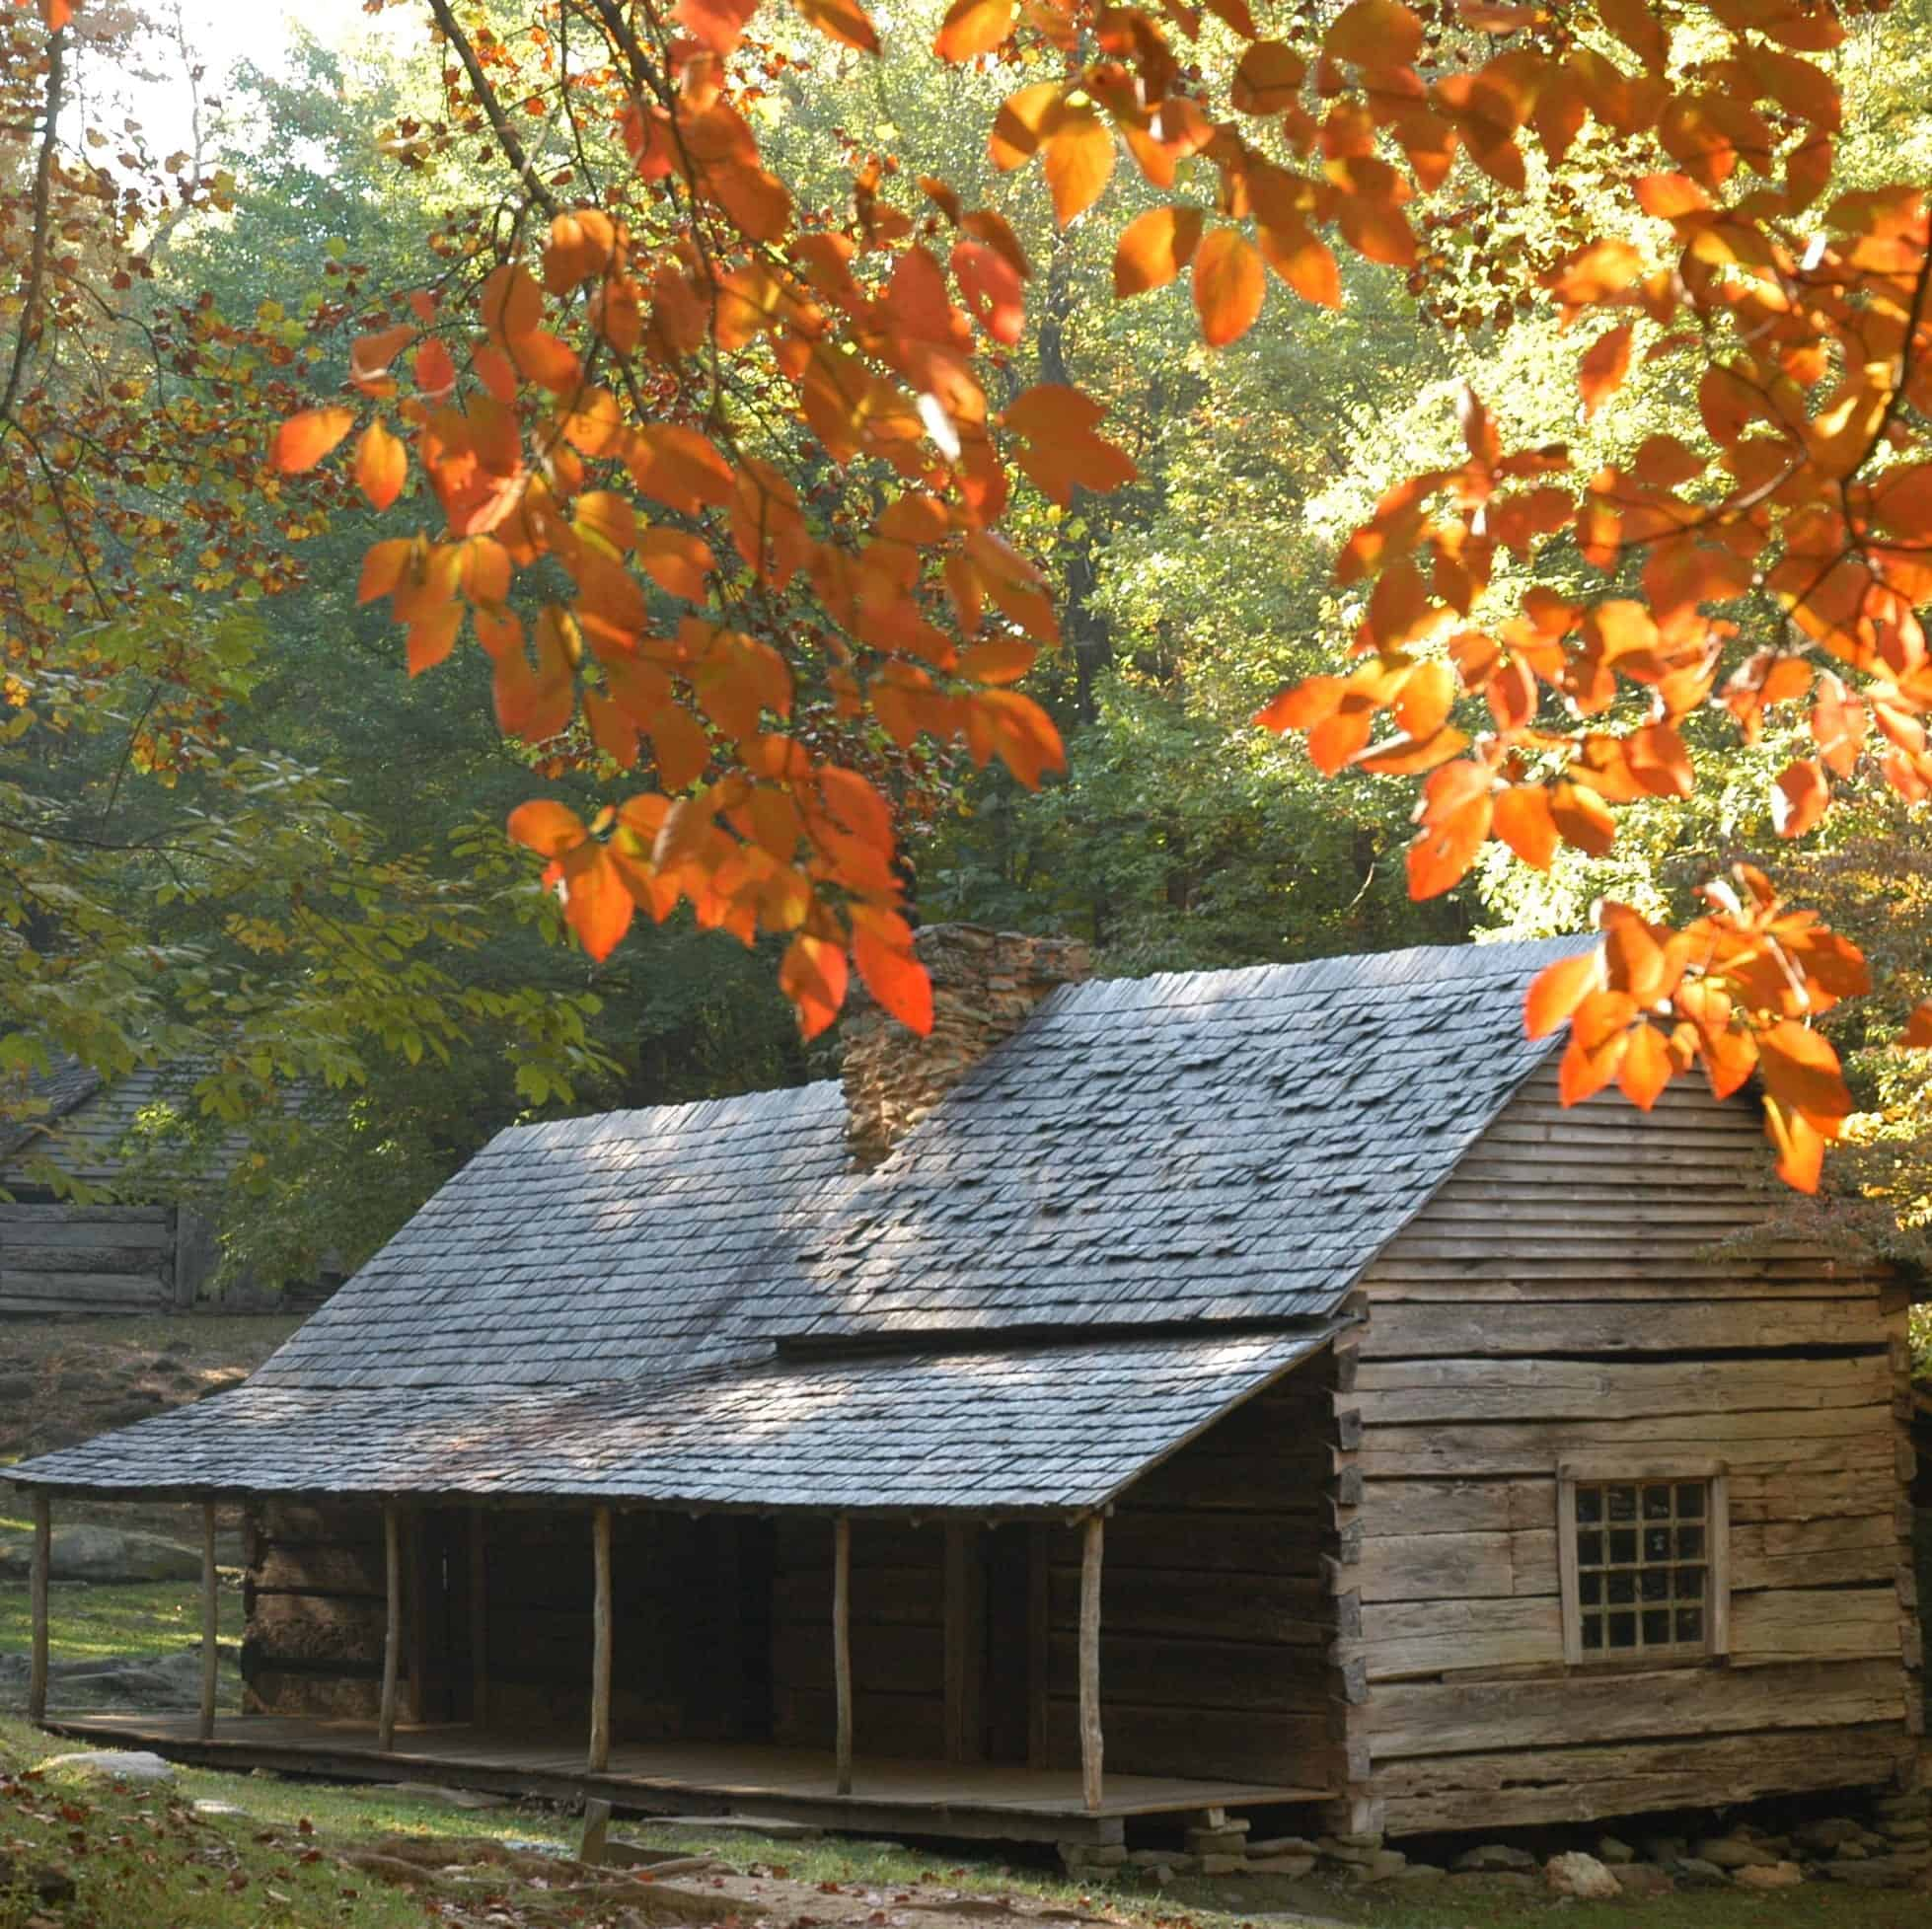 historic log buildings surrounded by fall colors in the Great Smoky Mountains National Park